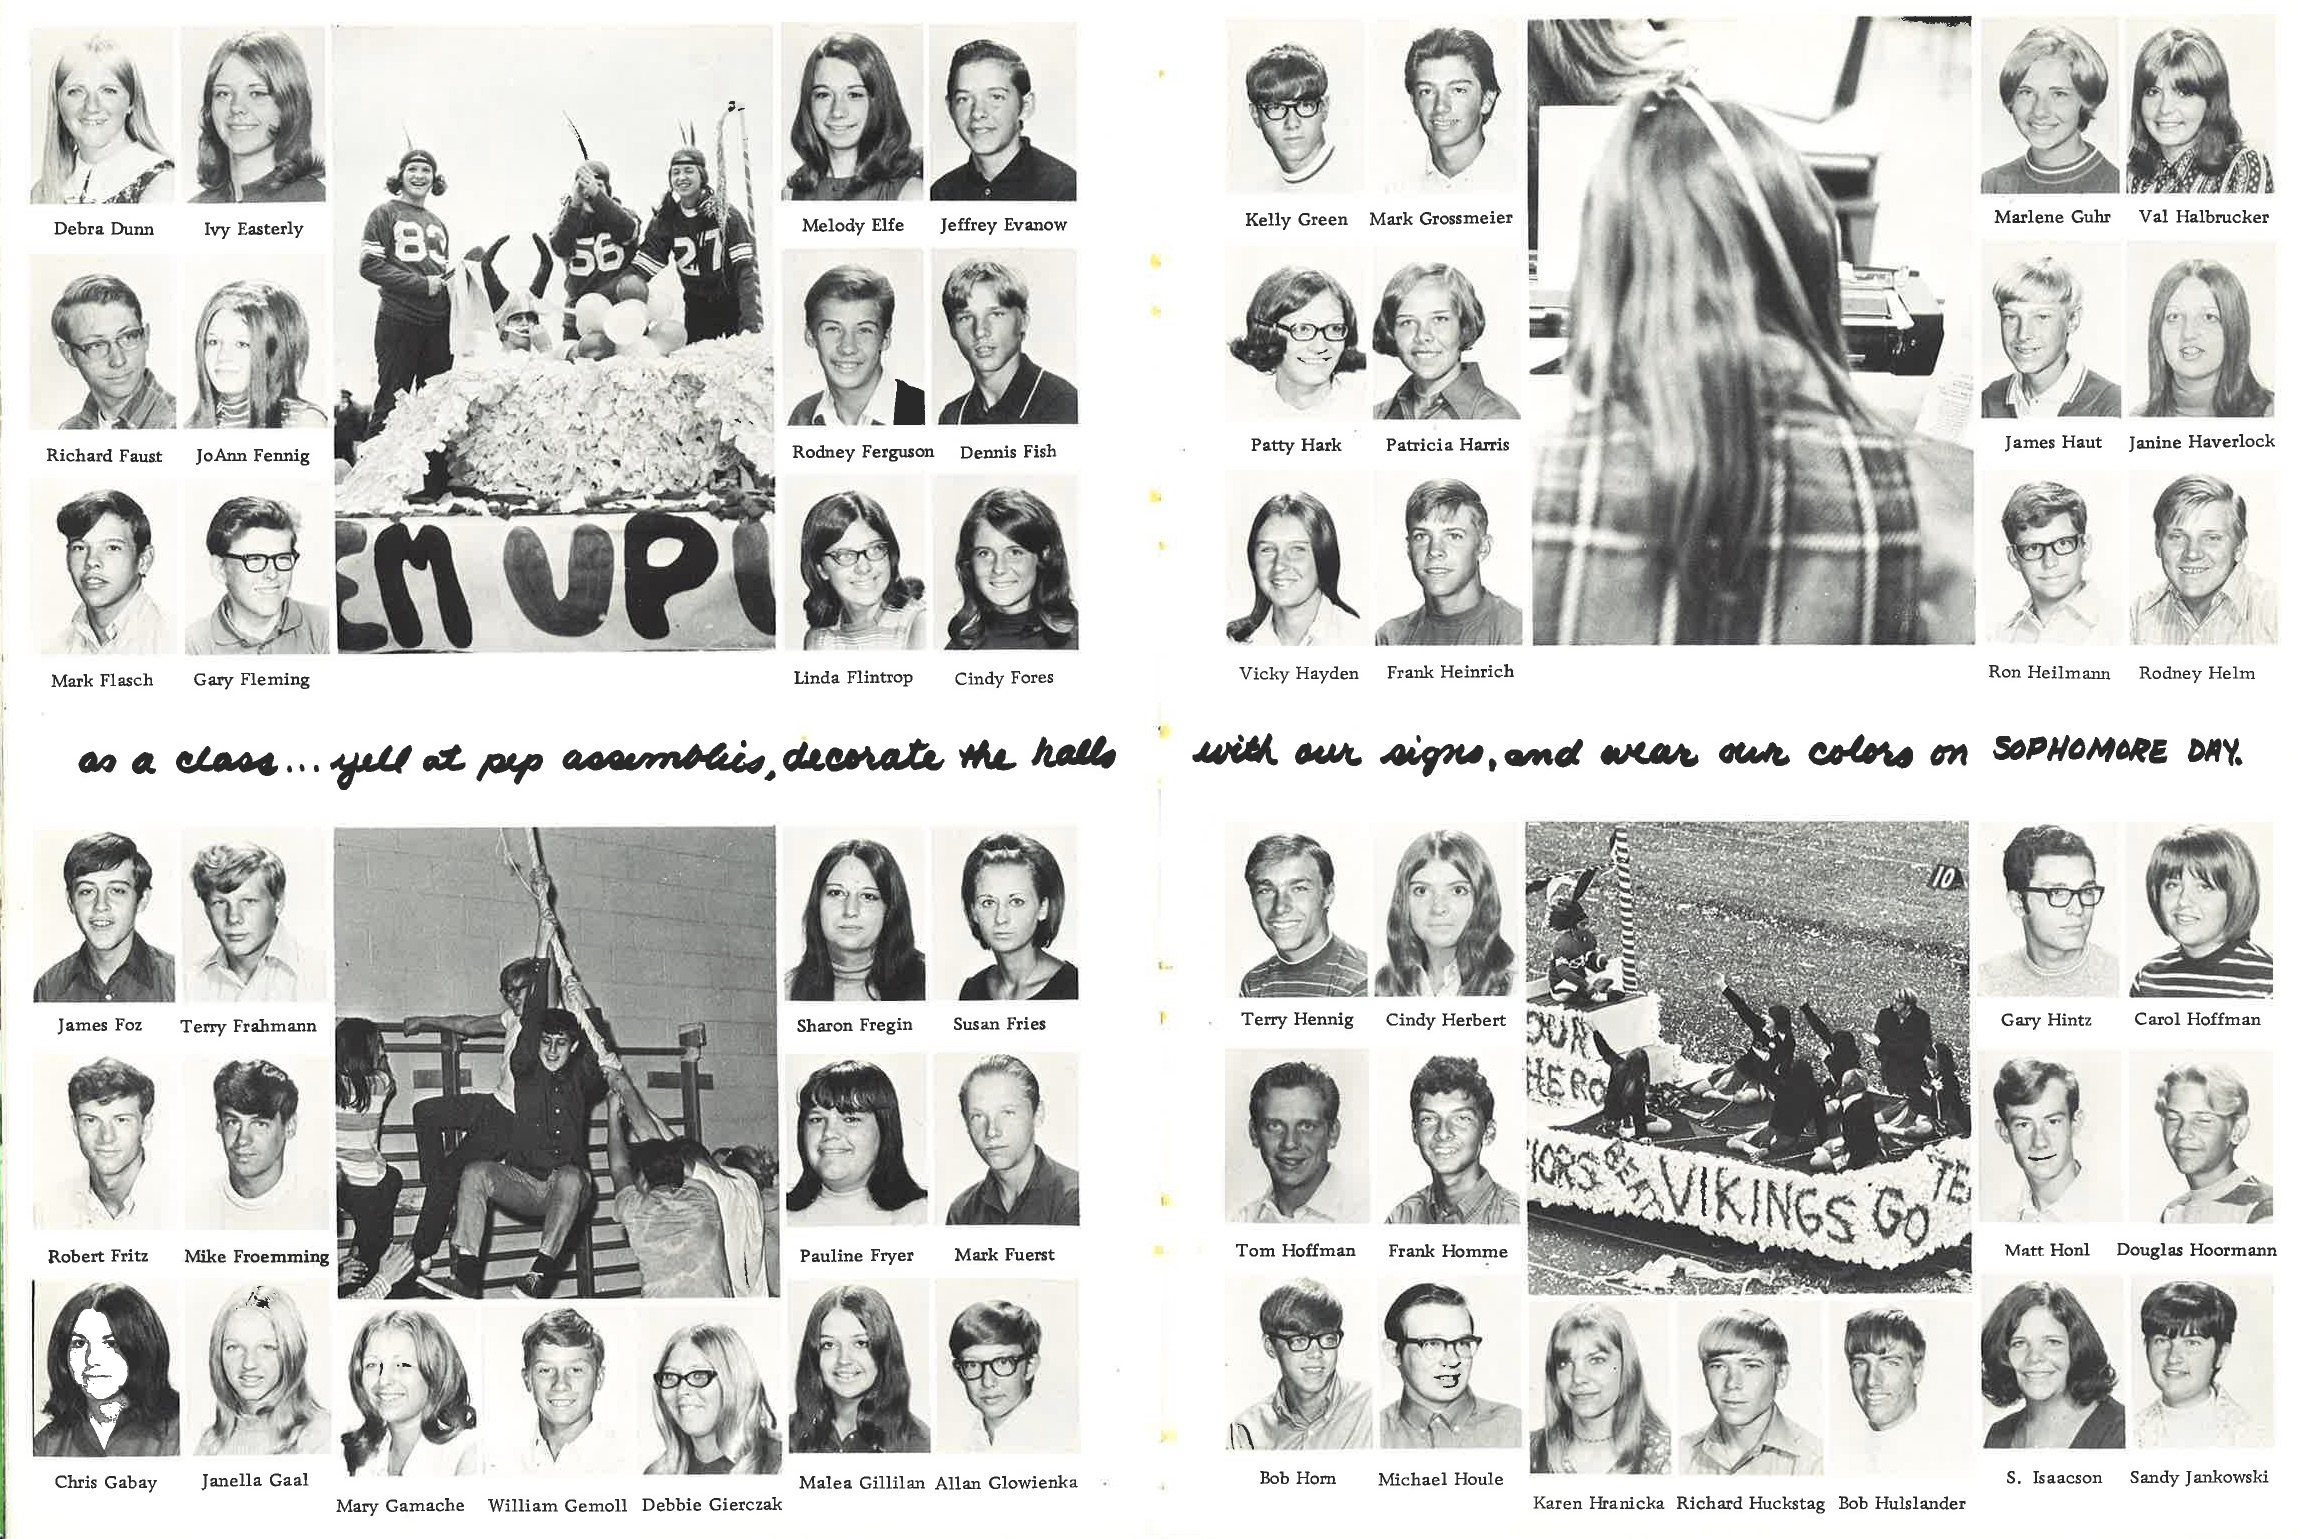 1971_Yearbook_40-41.jpg